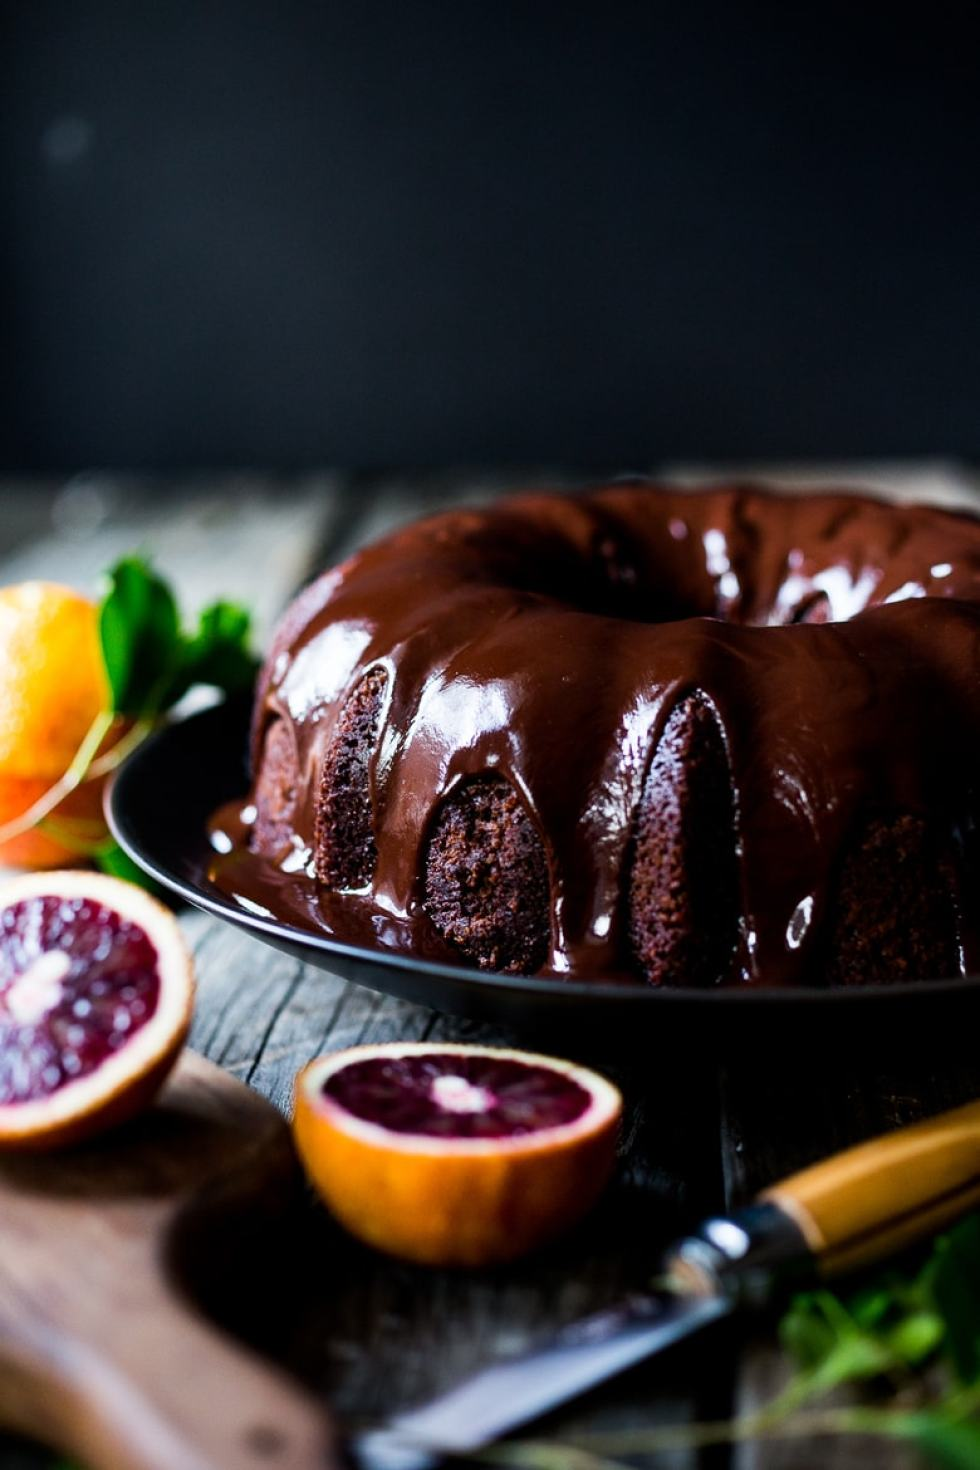 A delicious recipe for Dark Chocolate Bundt Cake with Blood Oranges and a Chocolate Ganache icing. Simple and scrumptious! | www.feastingathome.com